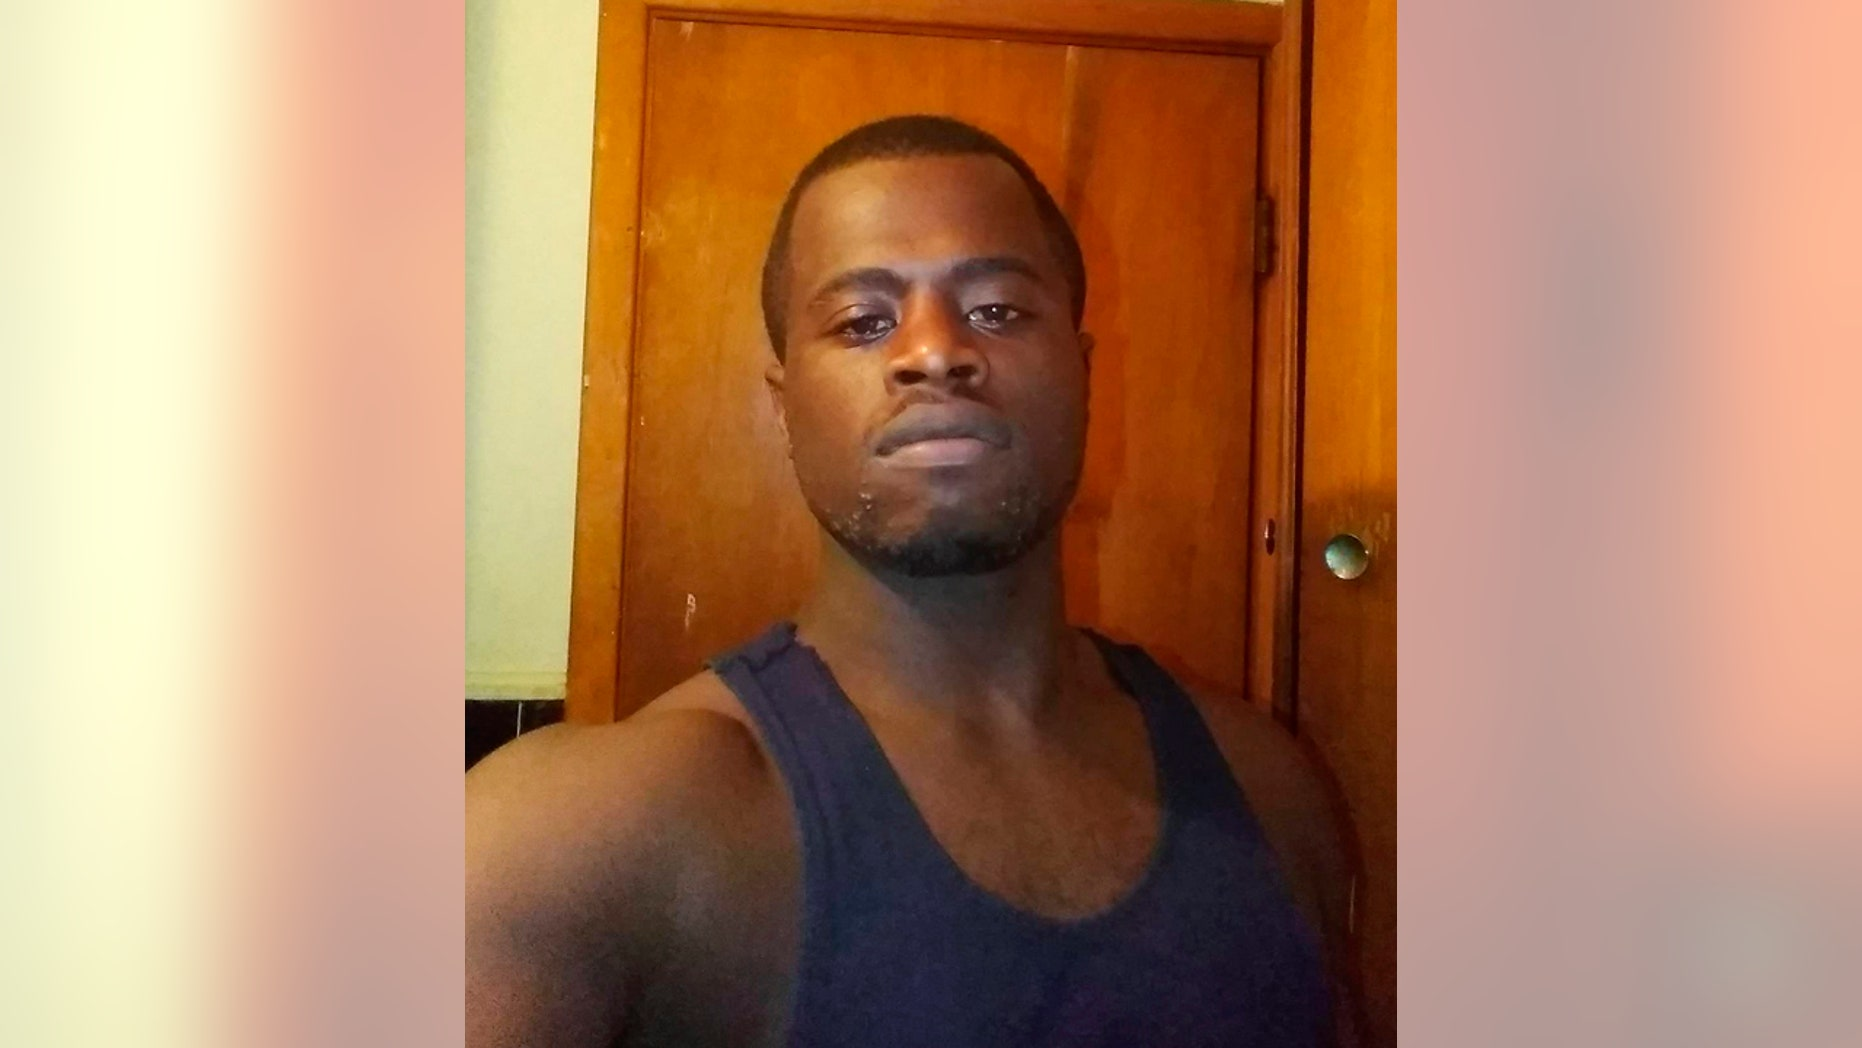 This image provided by Shreveport Police Department shows Tommy Lee Beverly Jr. Louisiana police are searching for Beverly, who is accused of taking selfies on a phone stolen at gunpoint that got uploaded to the owner's cloud account.